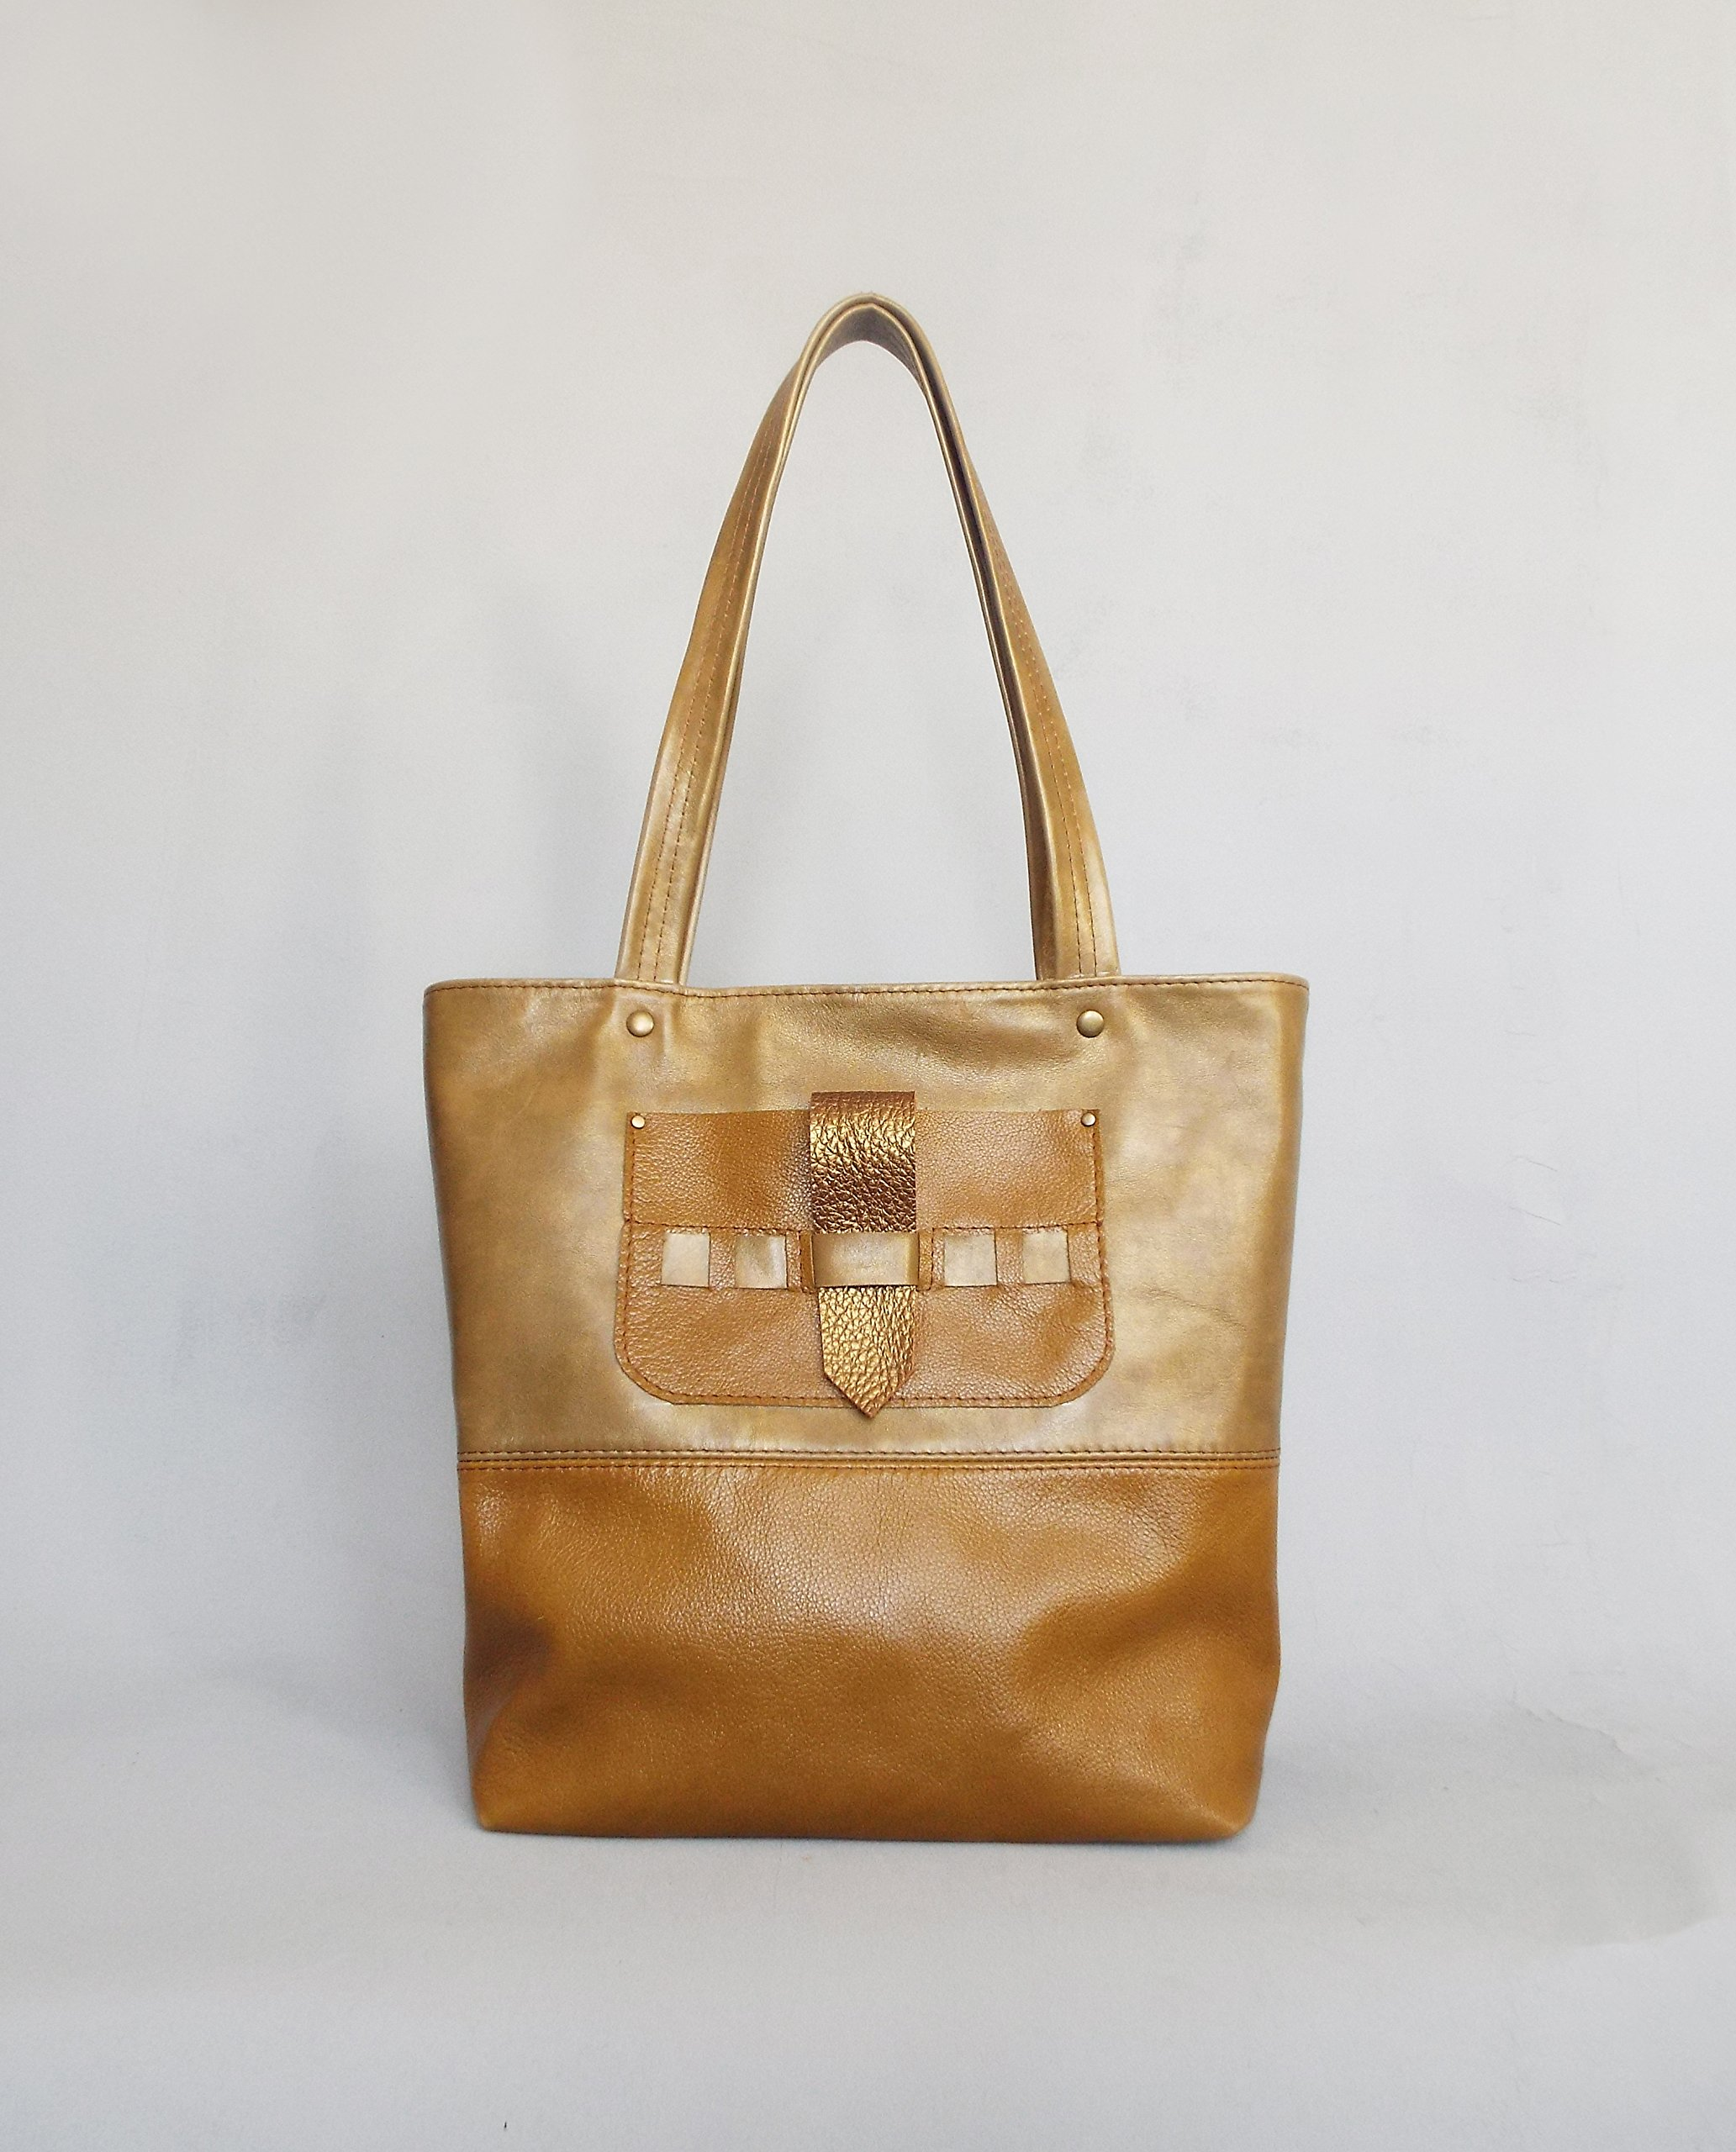 Leather tote bag. Ginger leather bag. Leather shoulder bag. Leather tote. Leather handbag. Tote bag leather.